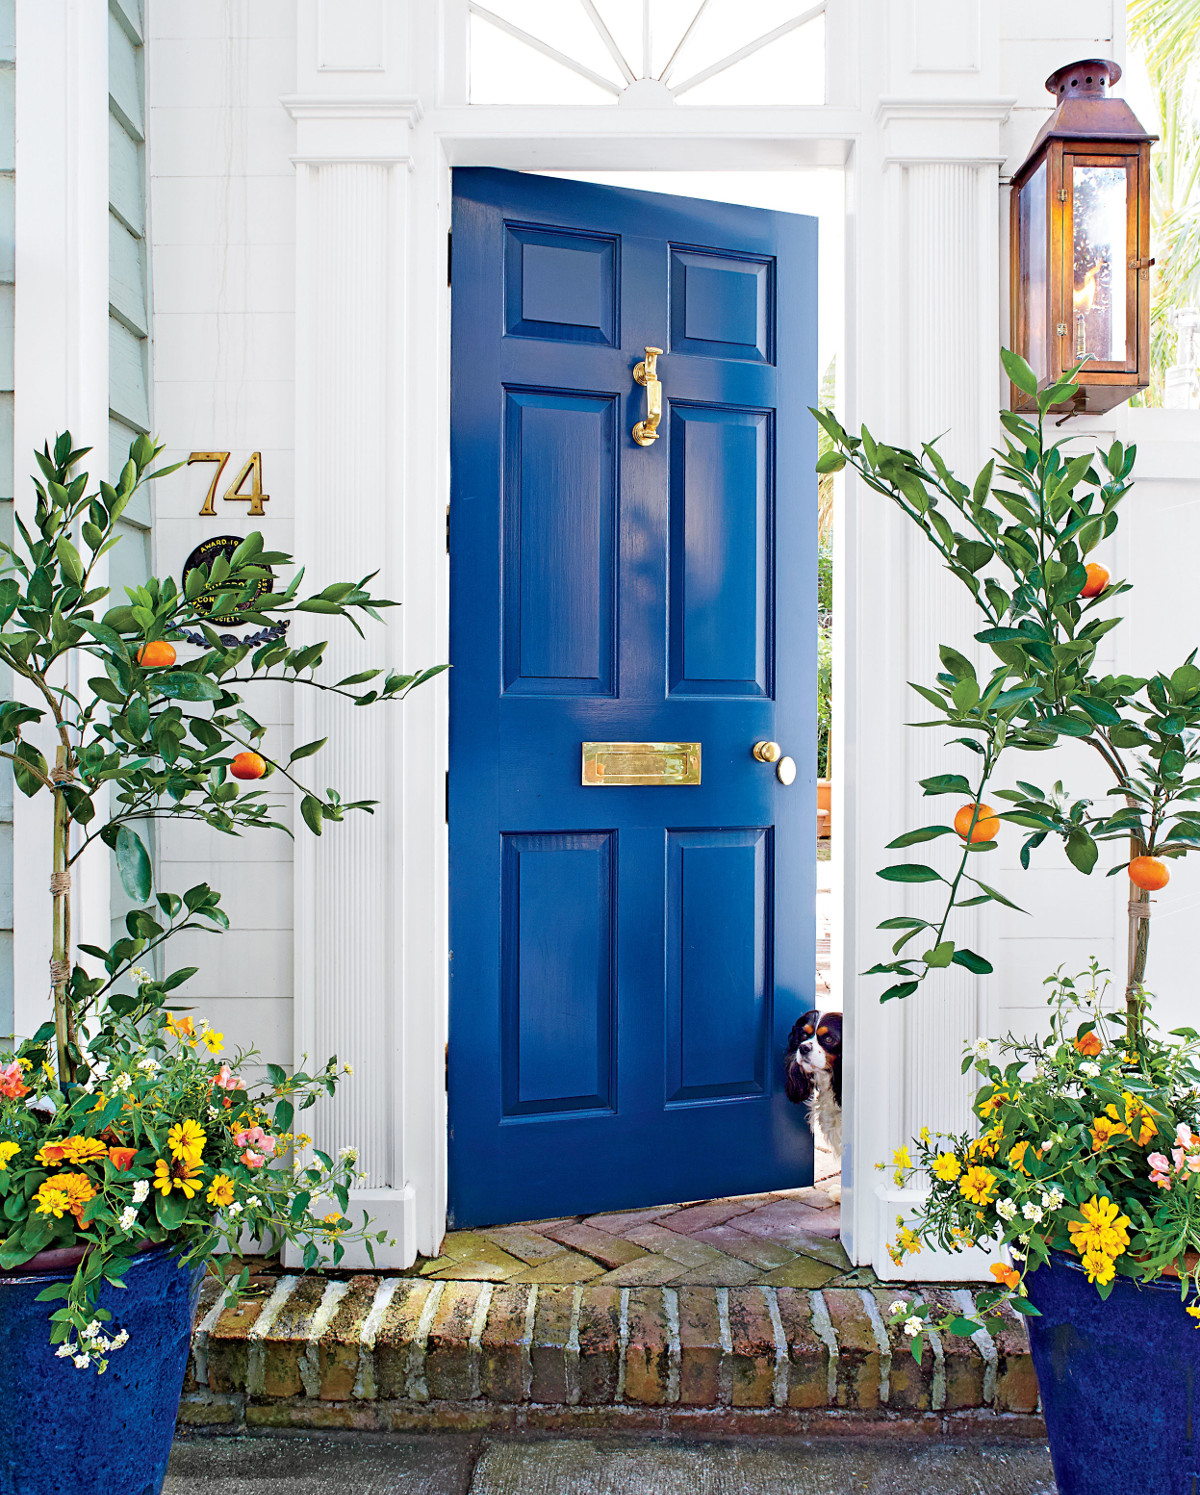 Front door blues atticmag the shade of blue on a front door can range from sky to navy or even lean towards teal rubansaba